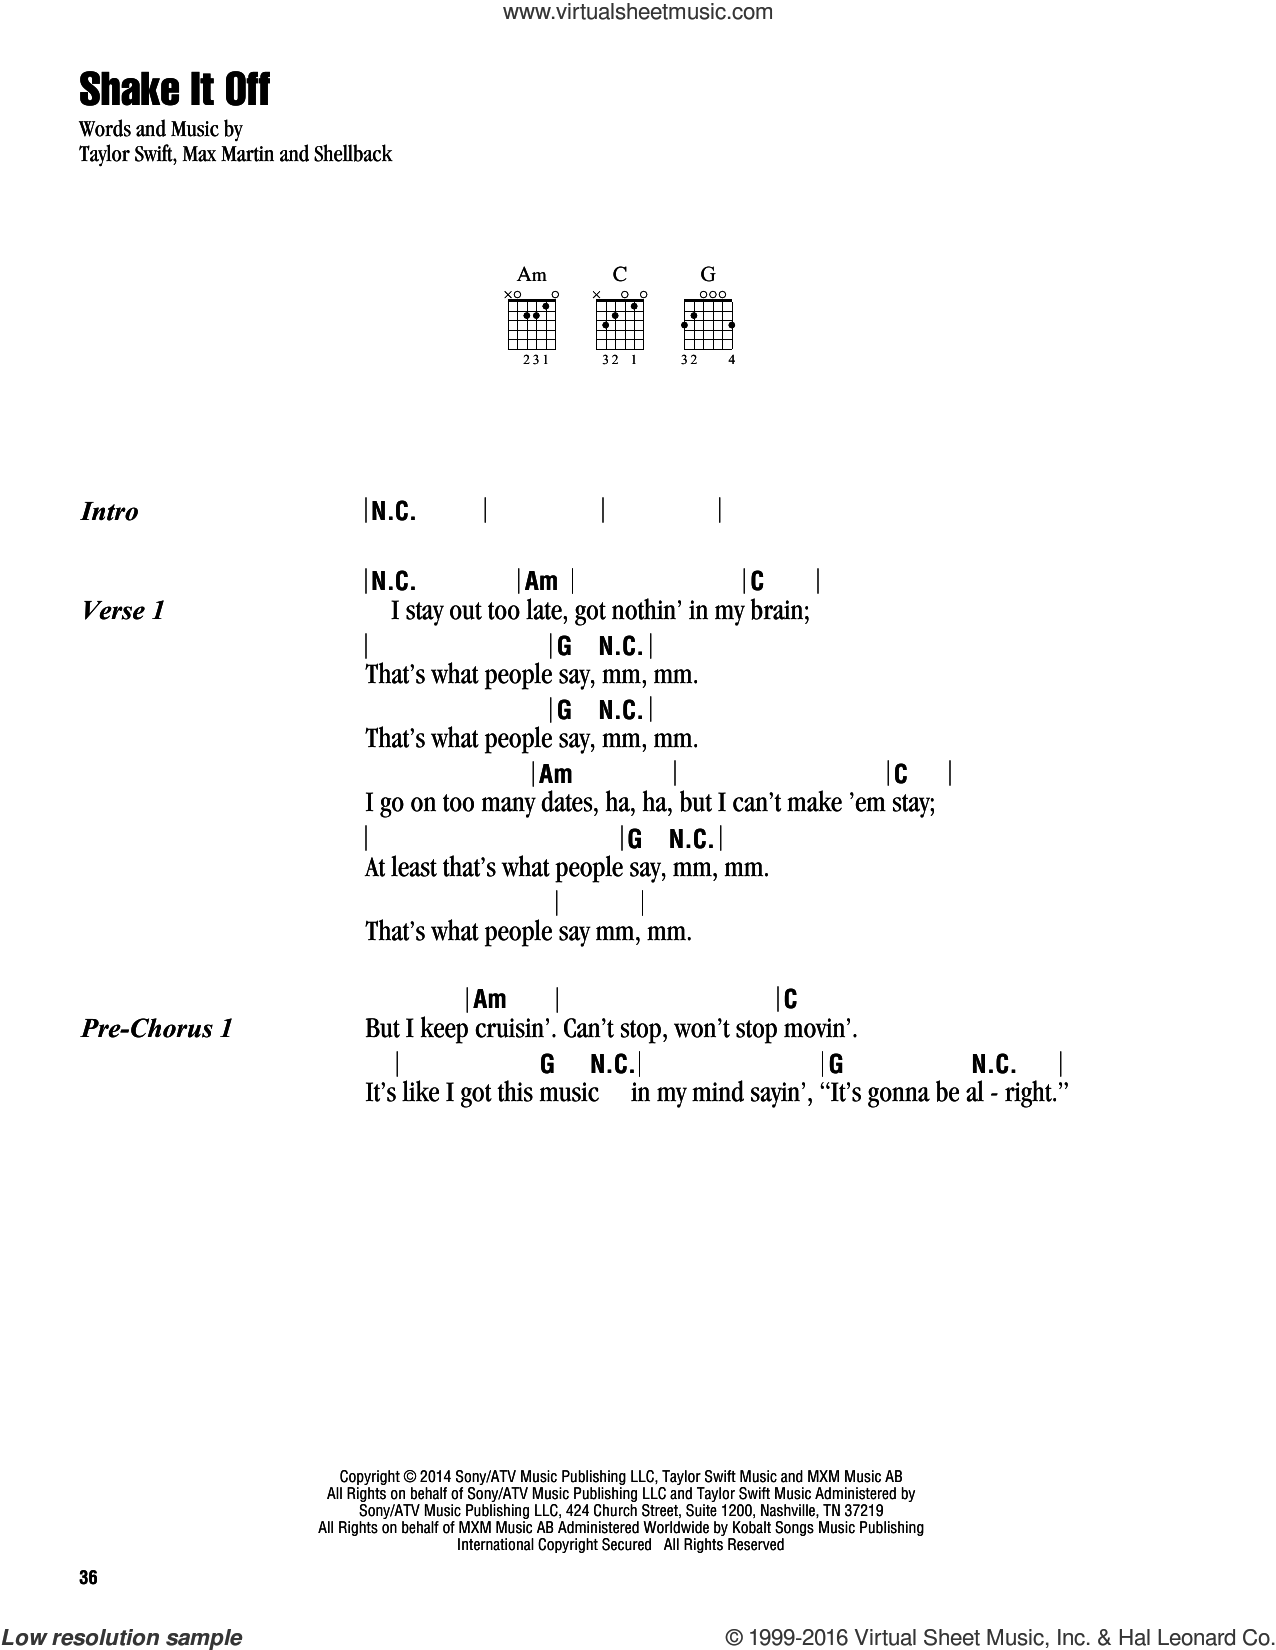 Shake It Off sheet music for guitar (chords) by Taylor Swift, Johan Schuster, Max Martin and Shellback, intermediate skill level